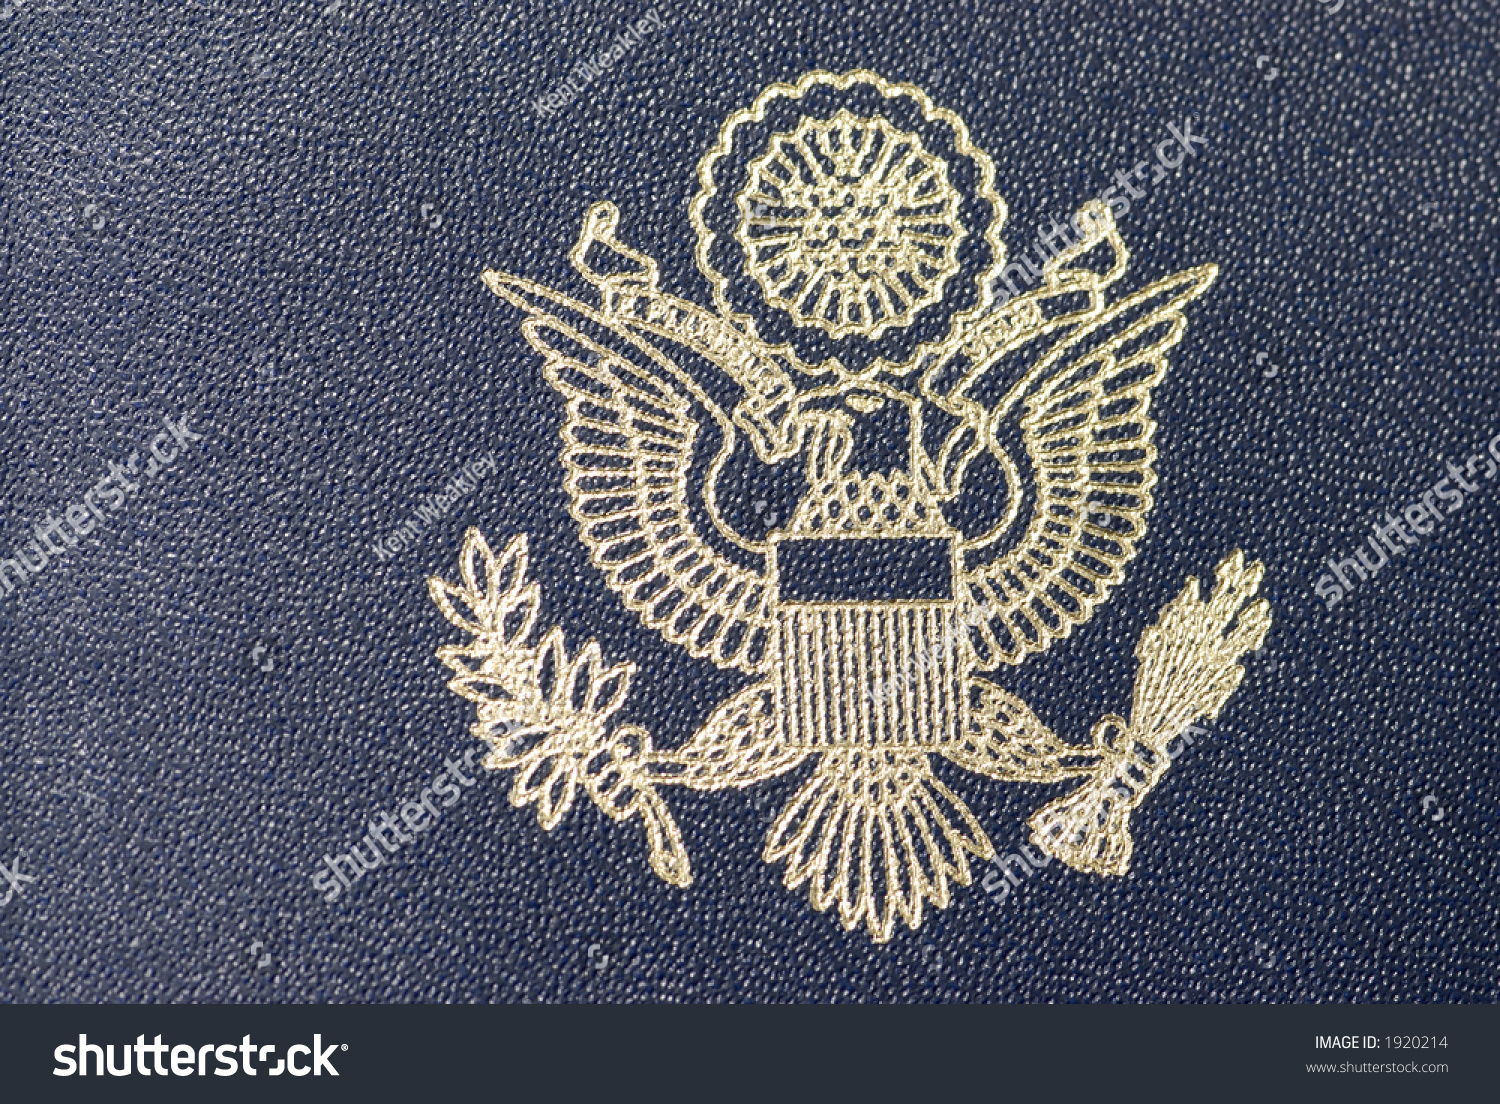 United States Of America Passport Stock Photo